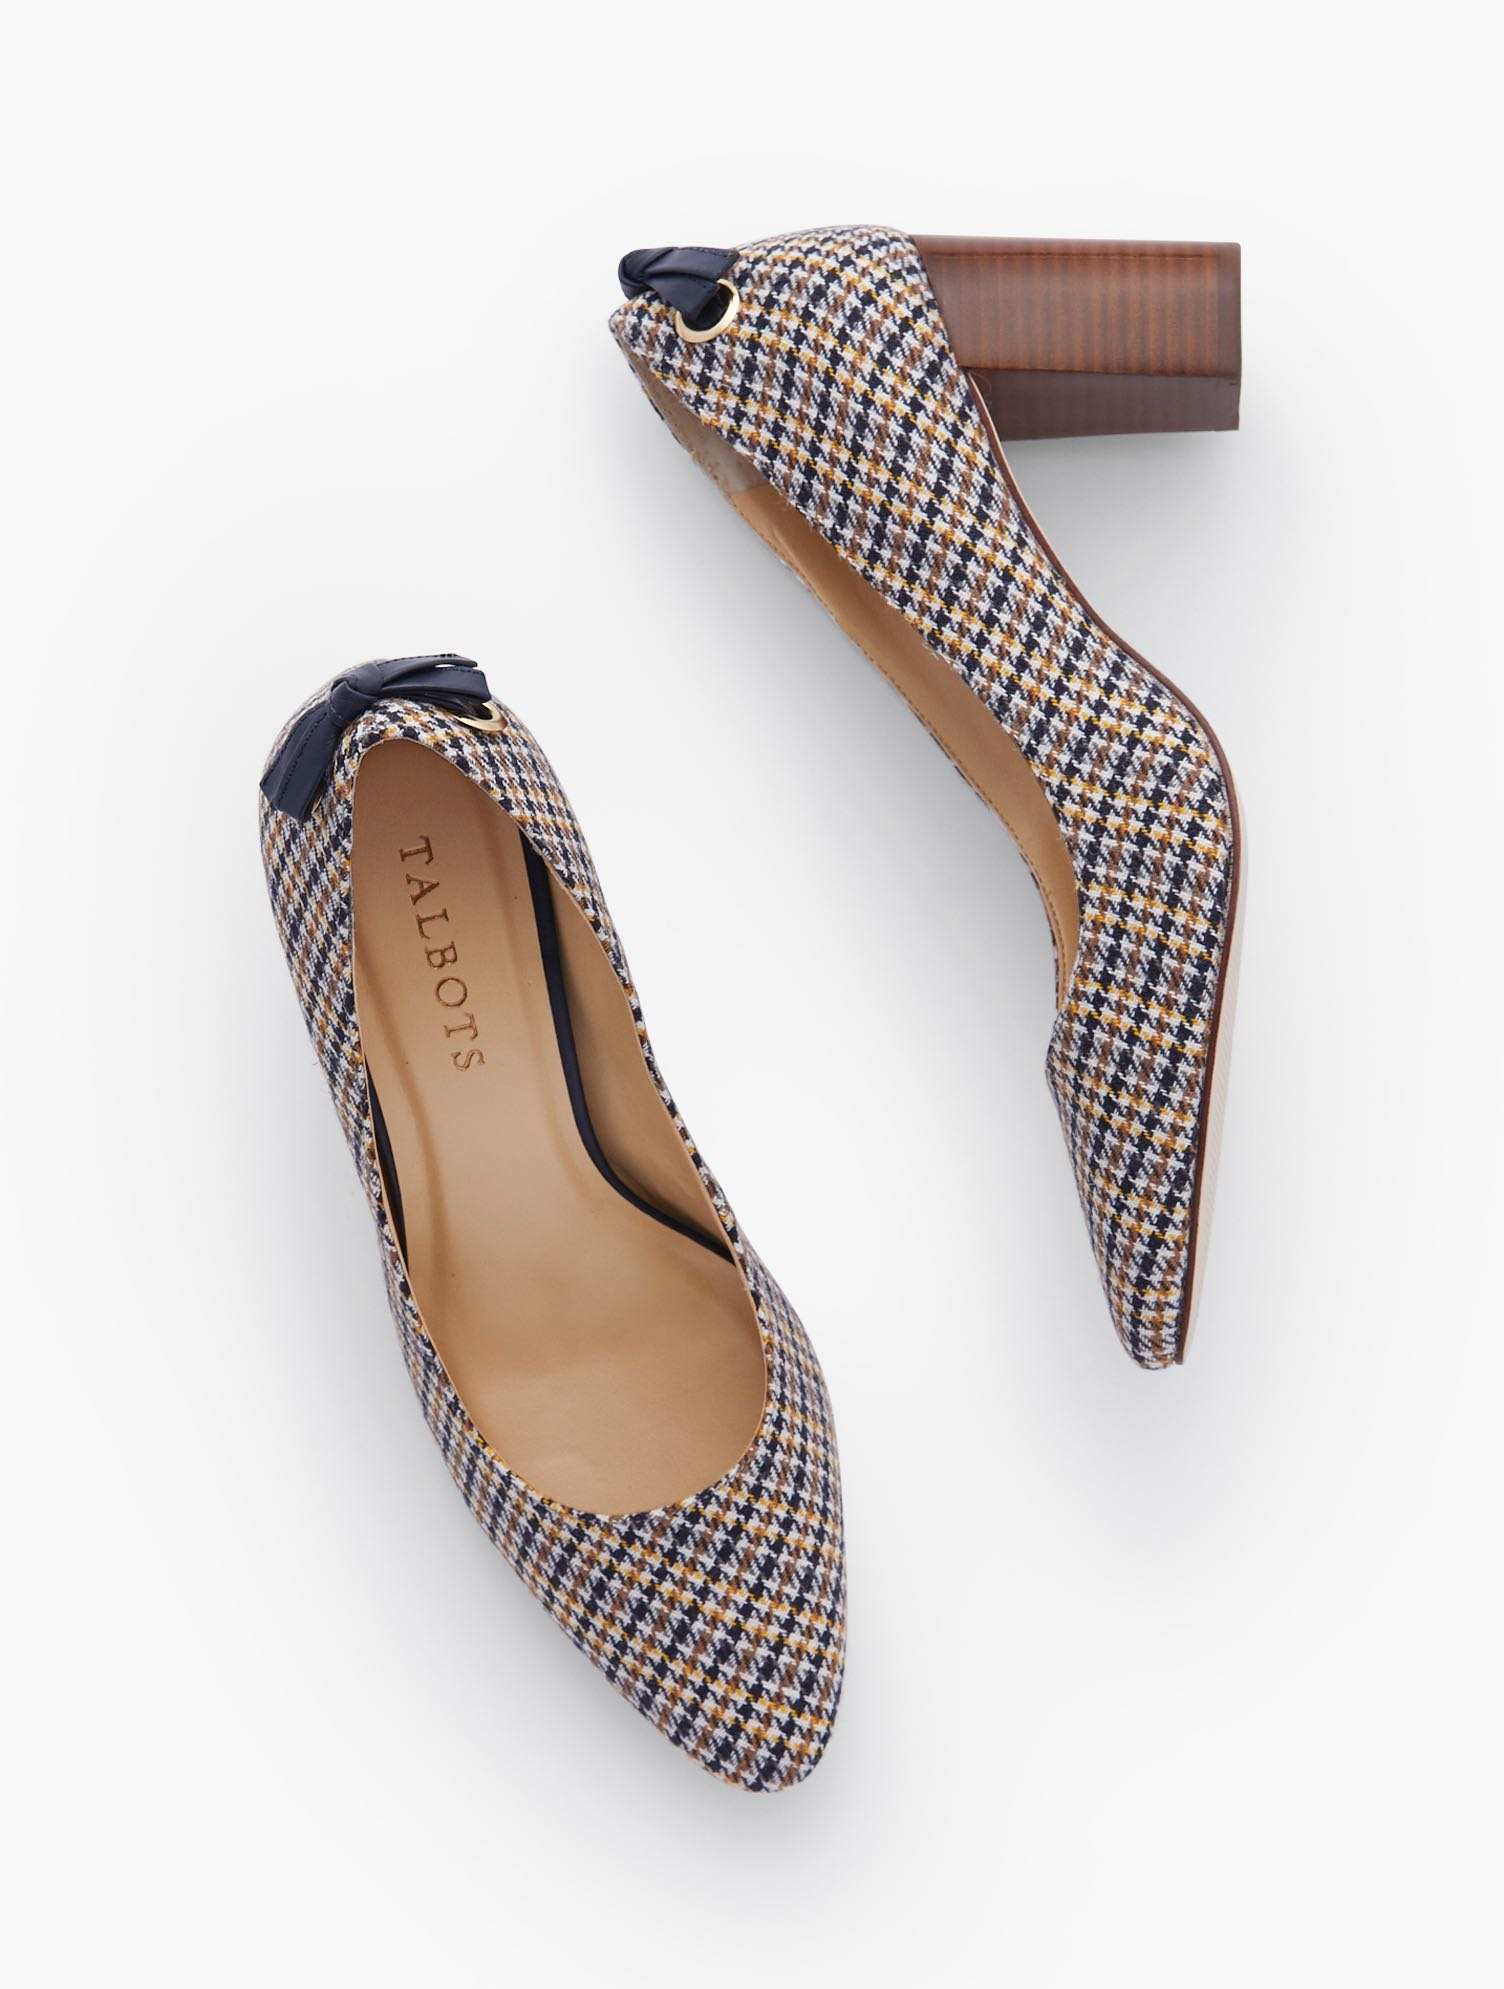 Our classic Kelsey Block Heel Pumps. Tie detail at back adds an extra dose of fashion interest. In elegant houndstooth. Features 3MM Memory foam footbed 3 inches heel Back tie detail Almond toe Imported Material: 34% Acrylic, 33% Polyolefin, 19% Polyester, 10% Wool, 4% Other Fibers Kelsey Tie Detail Block Heel Pumps - Houndstooth - Ivory - 11M Talbots